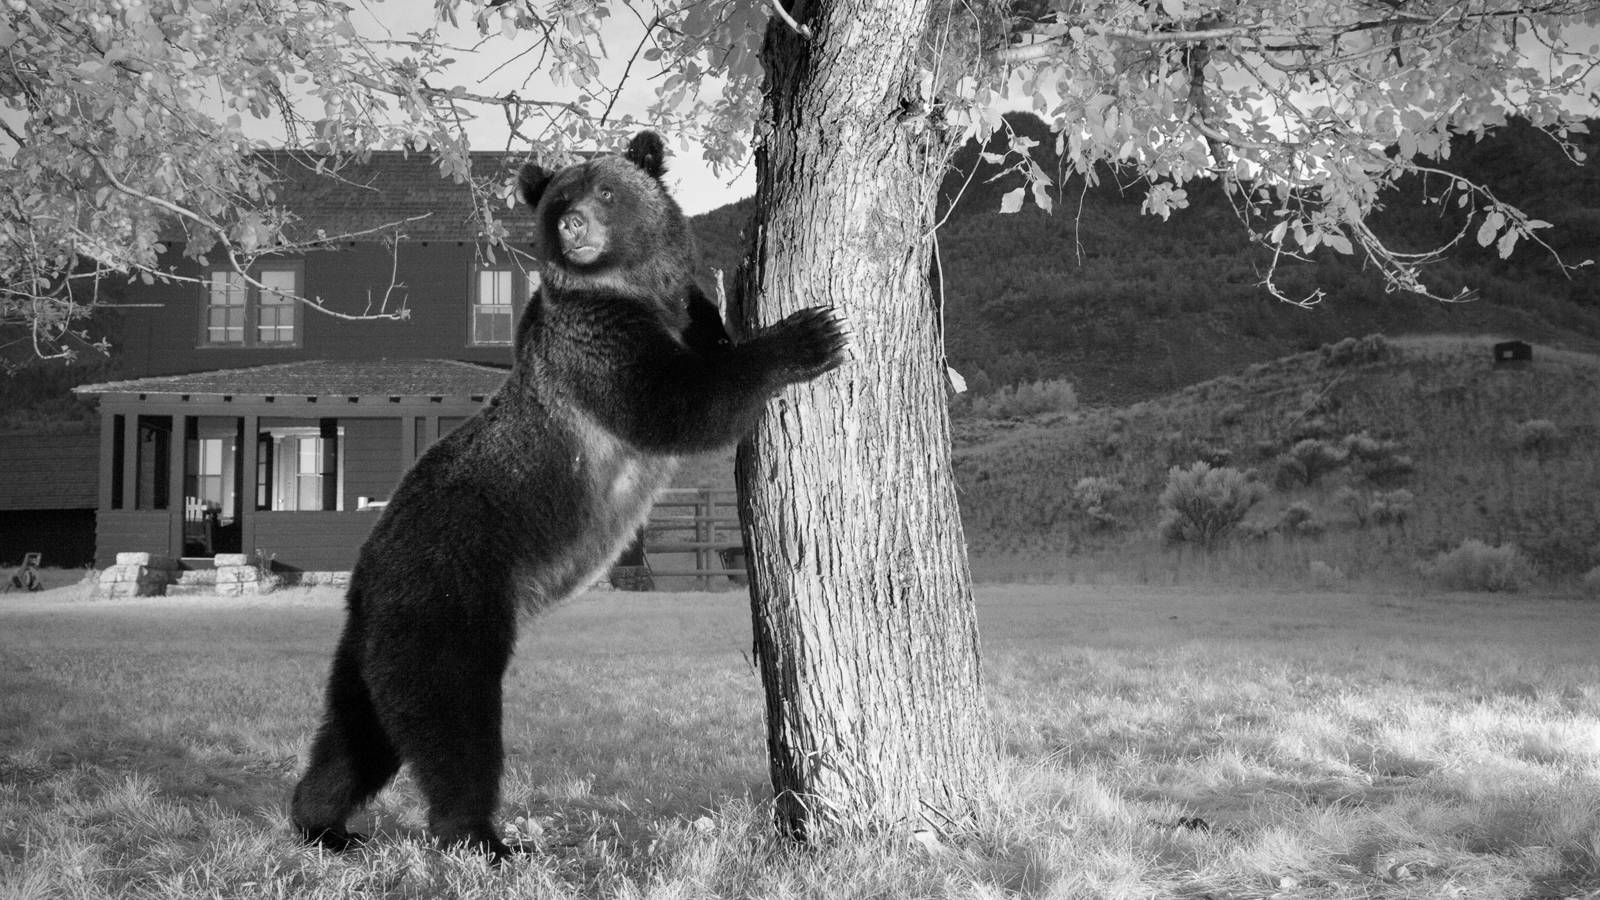 bear at tree